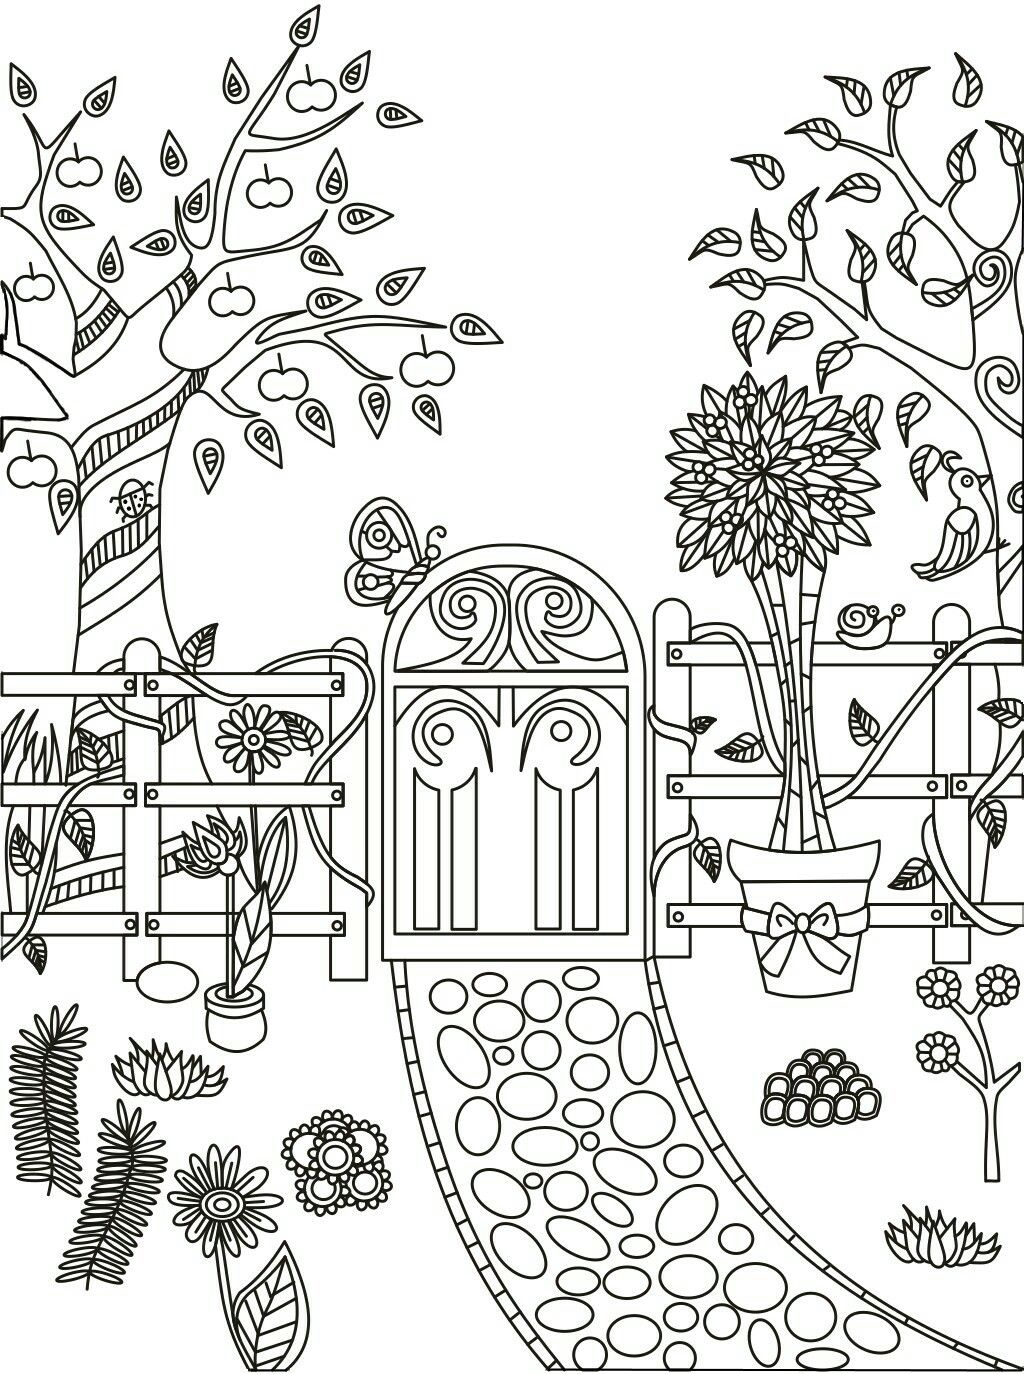 Garden path coloring page Colouring